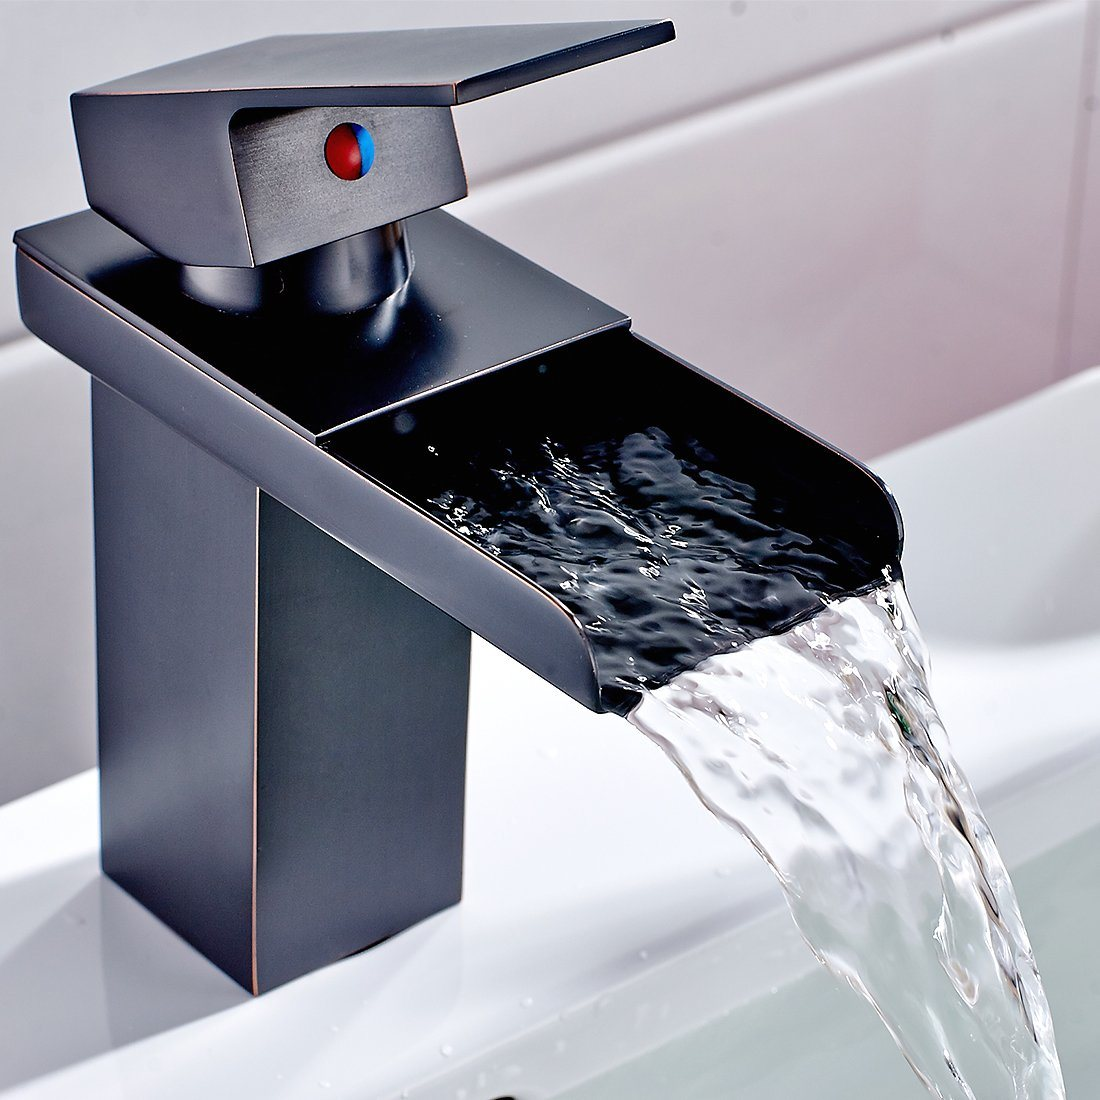 waterfall vessel tub bathroom bathtub sinks sink wall faucet for faucets mount